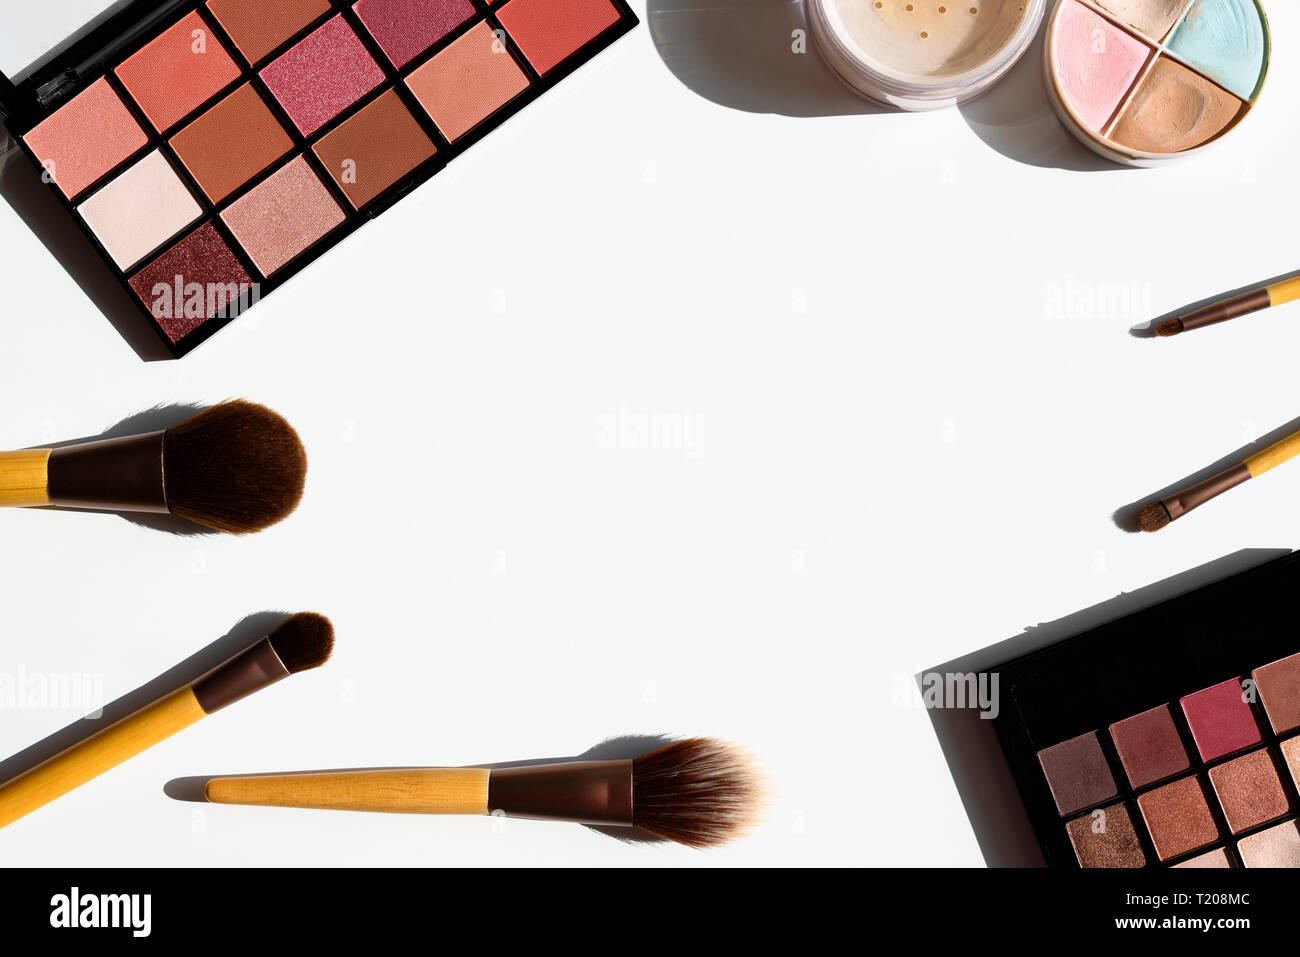 Bright arrangement of make up cosmetics and accessories. Eyeshadow palettes, powder, concealer and natural brushes with bamboo wood handles. Copy spac Stock Photo